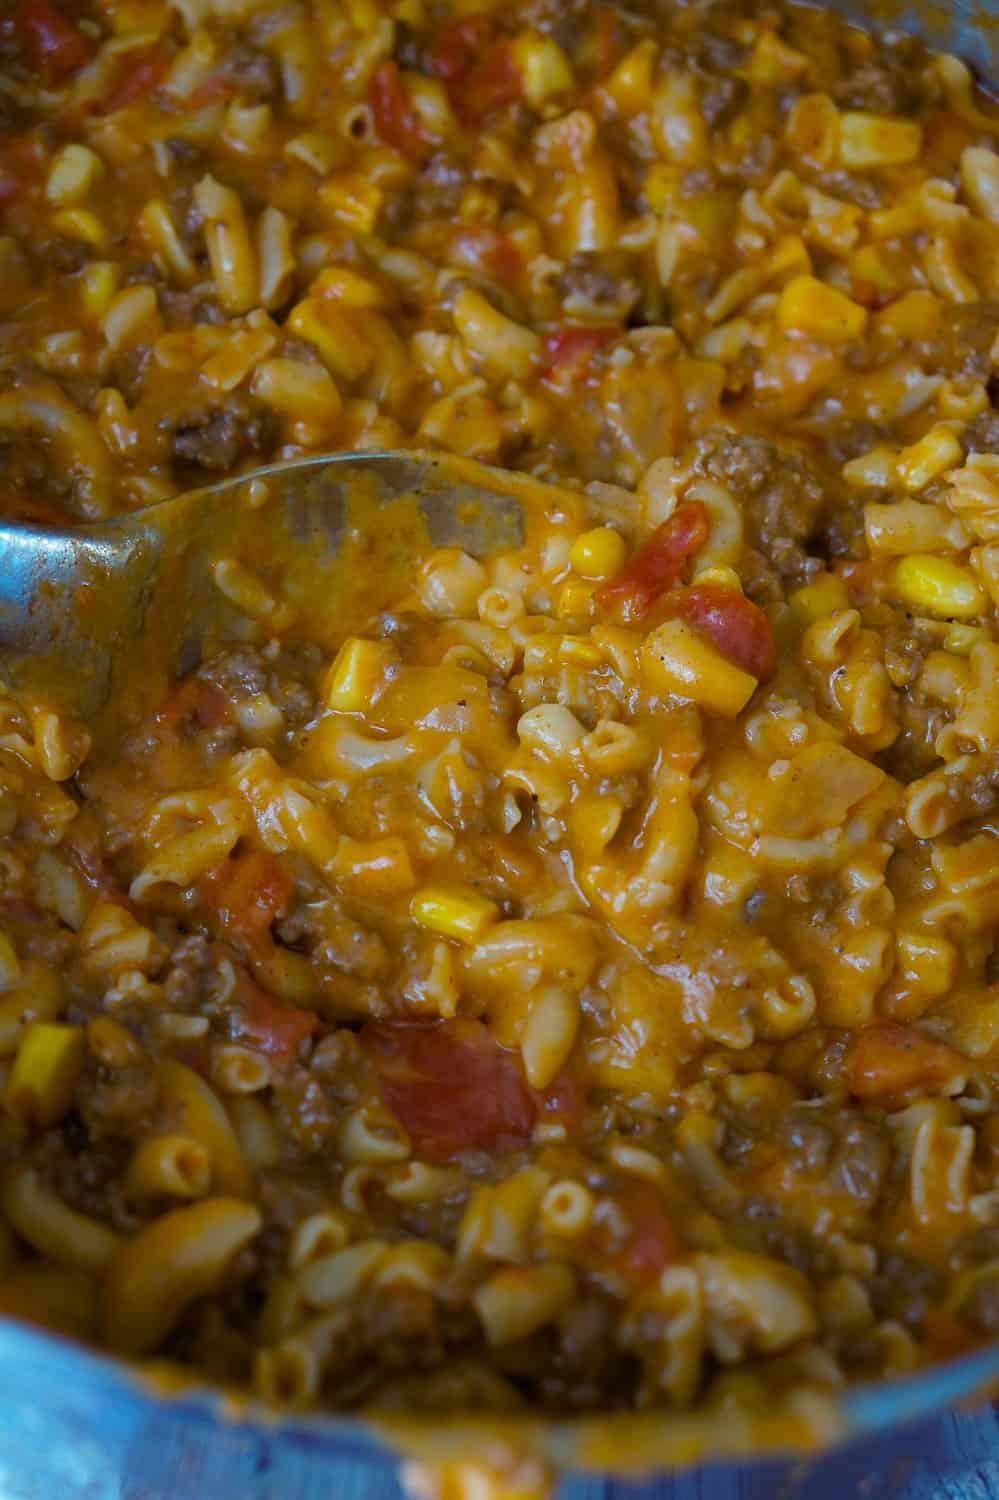 Cheesy Beef Goulash with Corn is an easy weeknight dinner recipe that takes less than 30 minutes from start to finish. This one pot dinner is loaded with diced tomatoes, macaroni noodles, ground beef corn and mozzarella cheese.